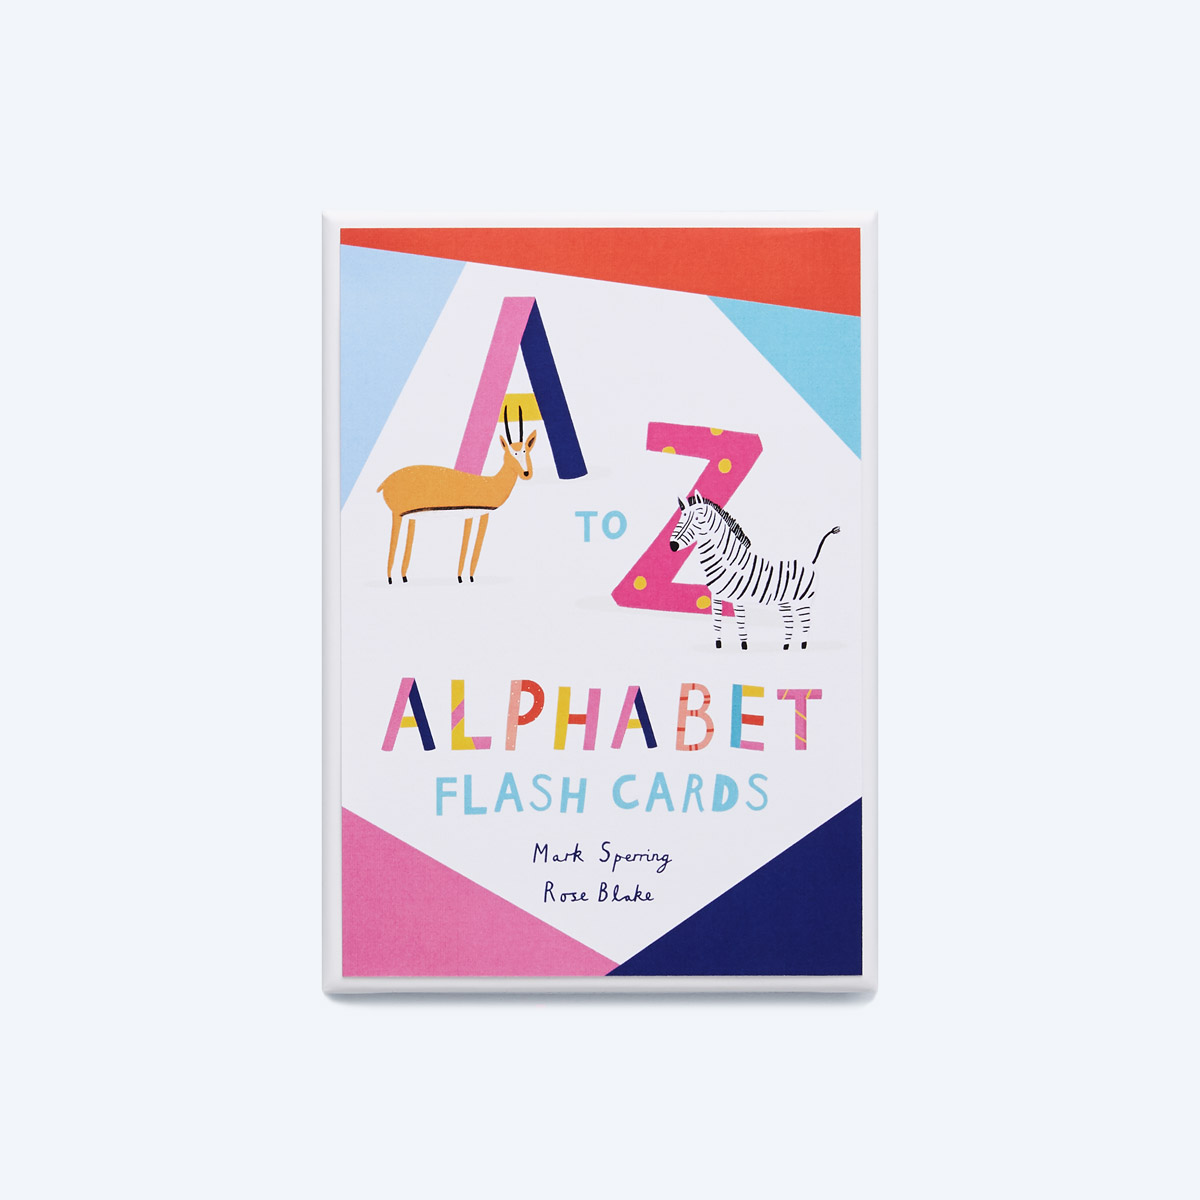 10.18 productimagery alphabetflashcards box